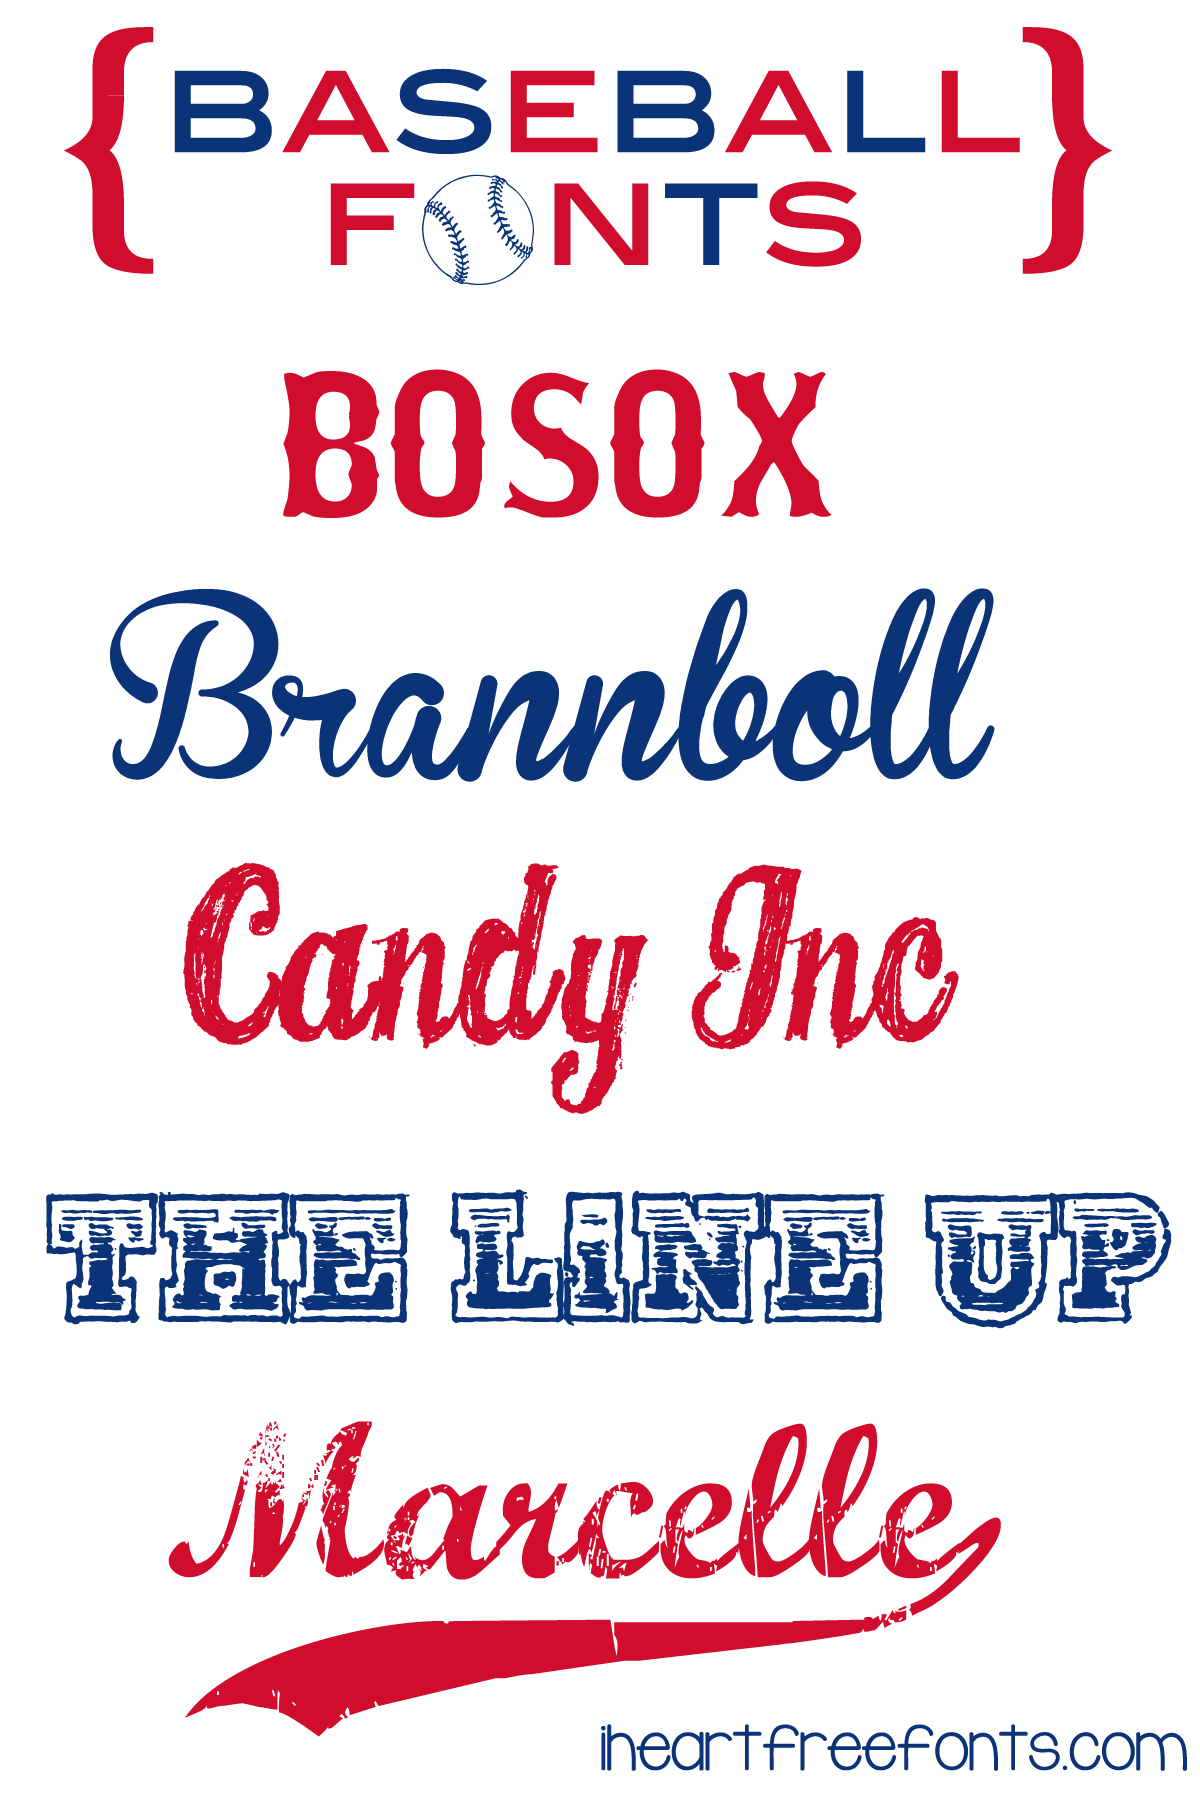 Baseball fonts | cricut fun | Baseball font, Silhouette fonts